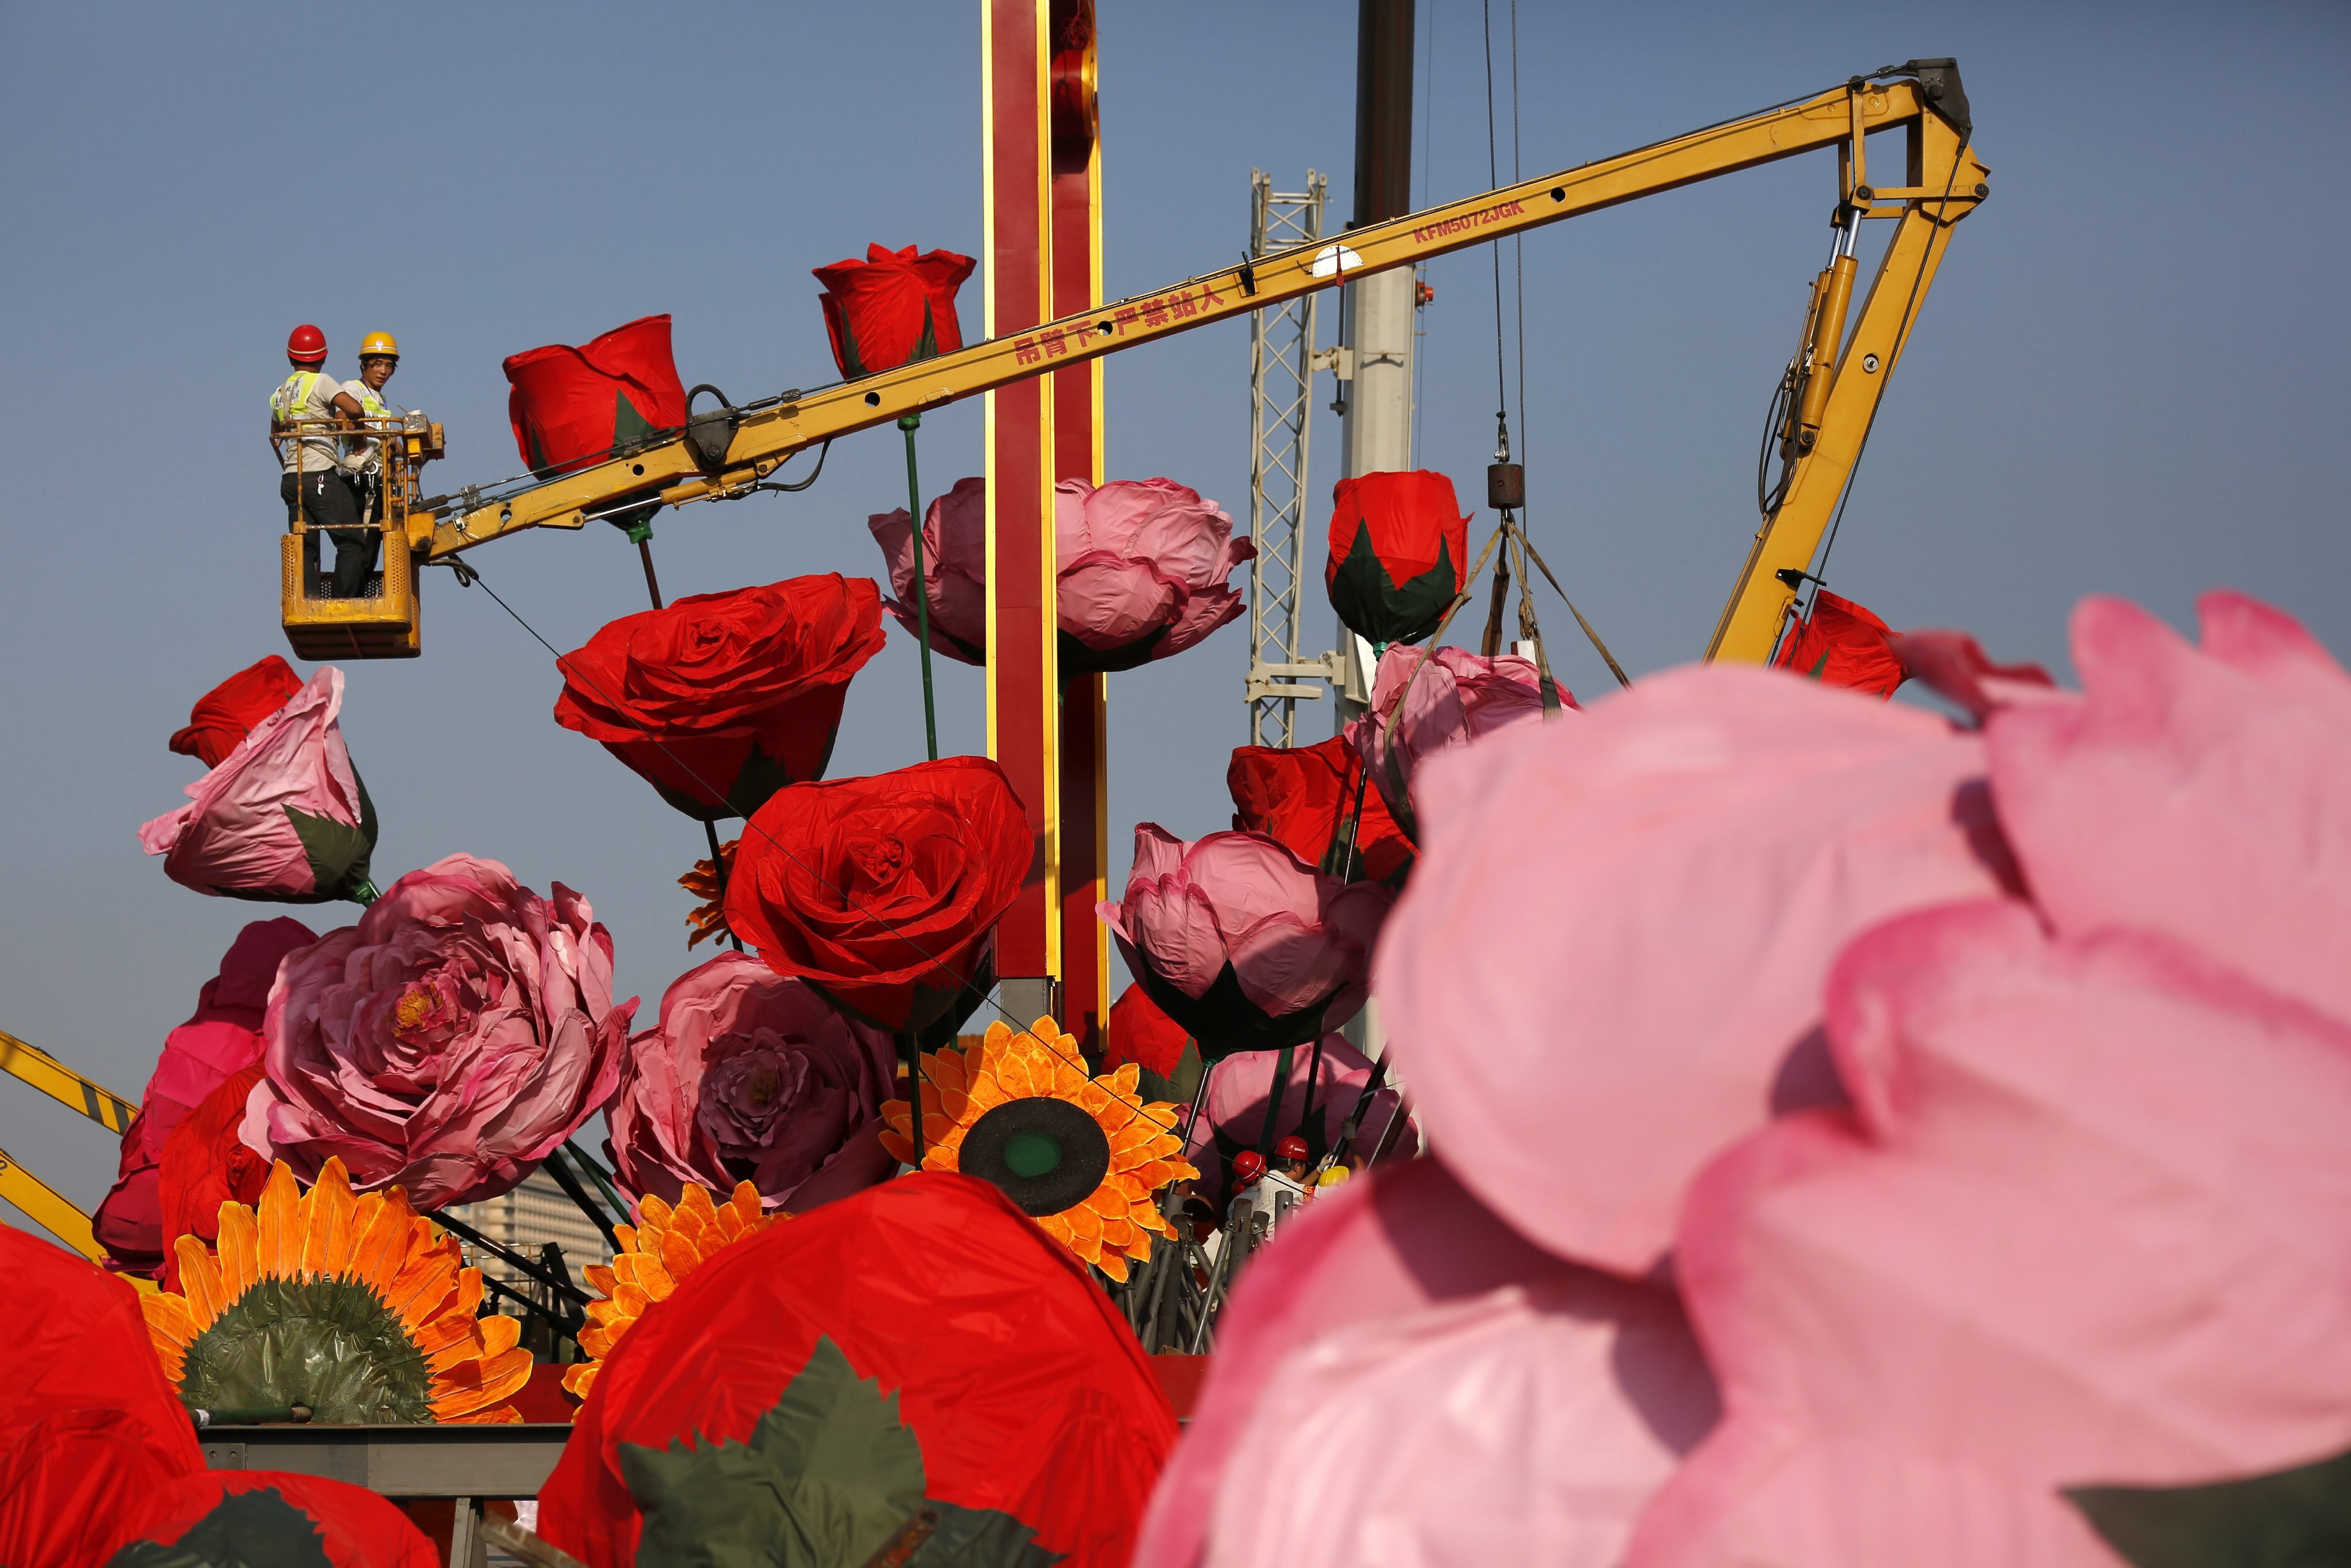 Chinese workers set up giant decoration flowers in preparation for National Day at Tiananmen Square in Beijing on Sept. 18, 2014.